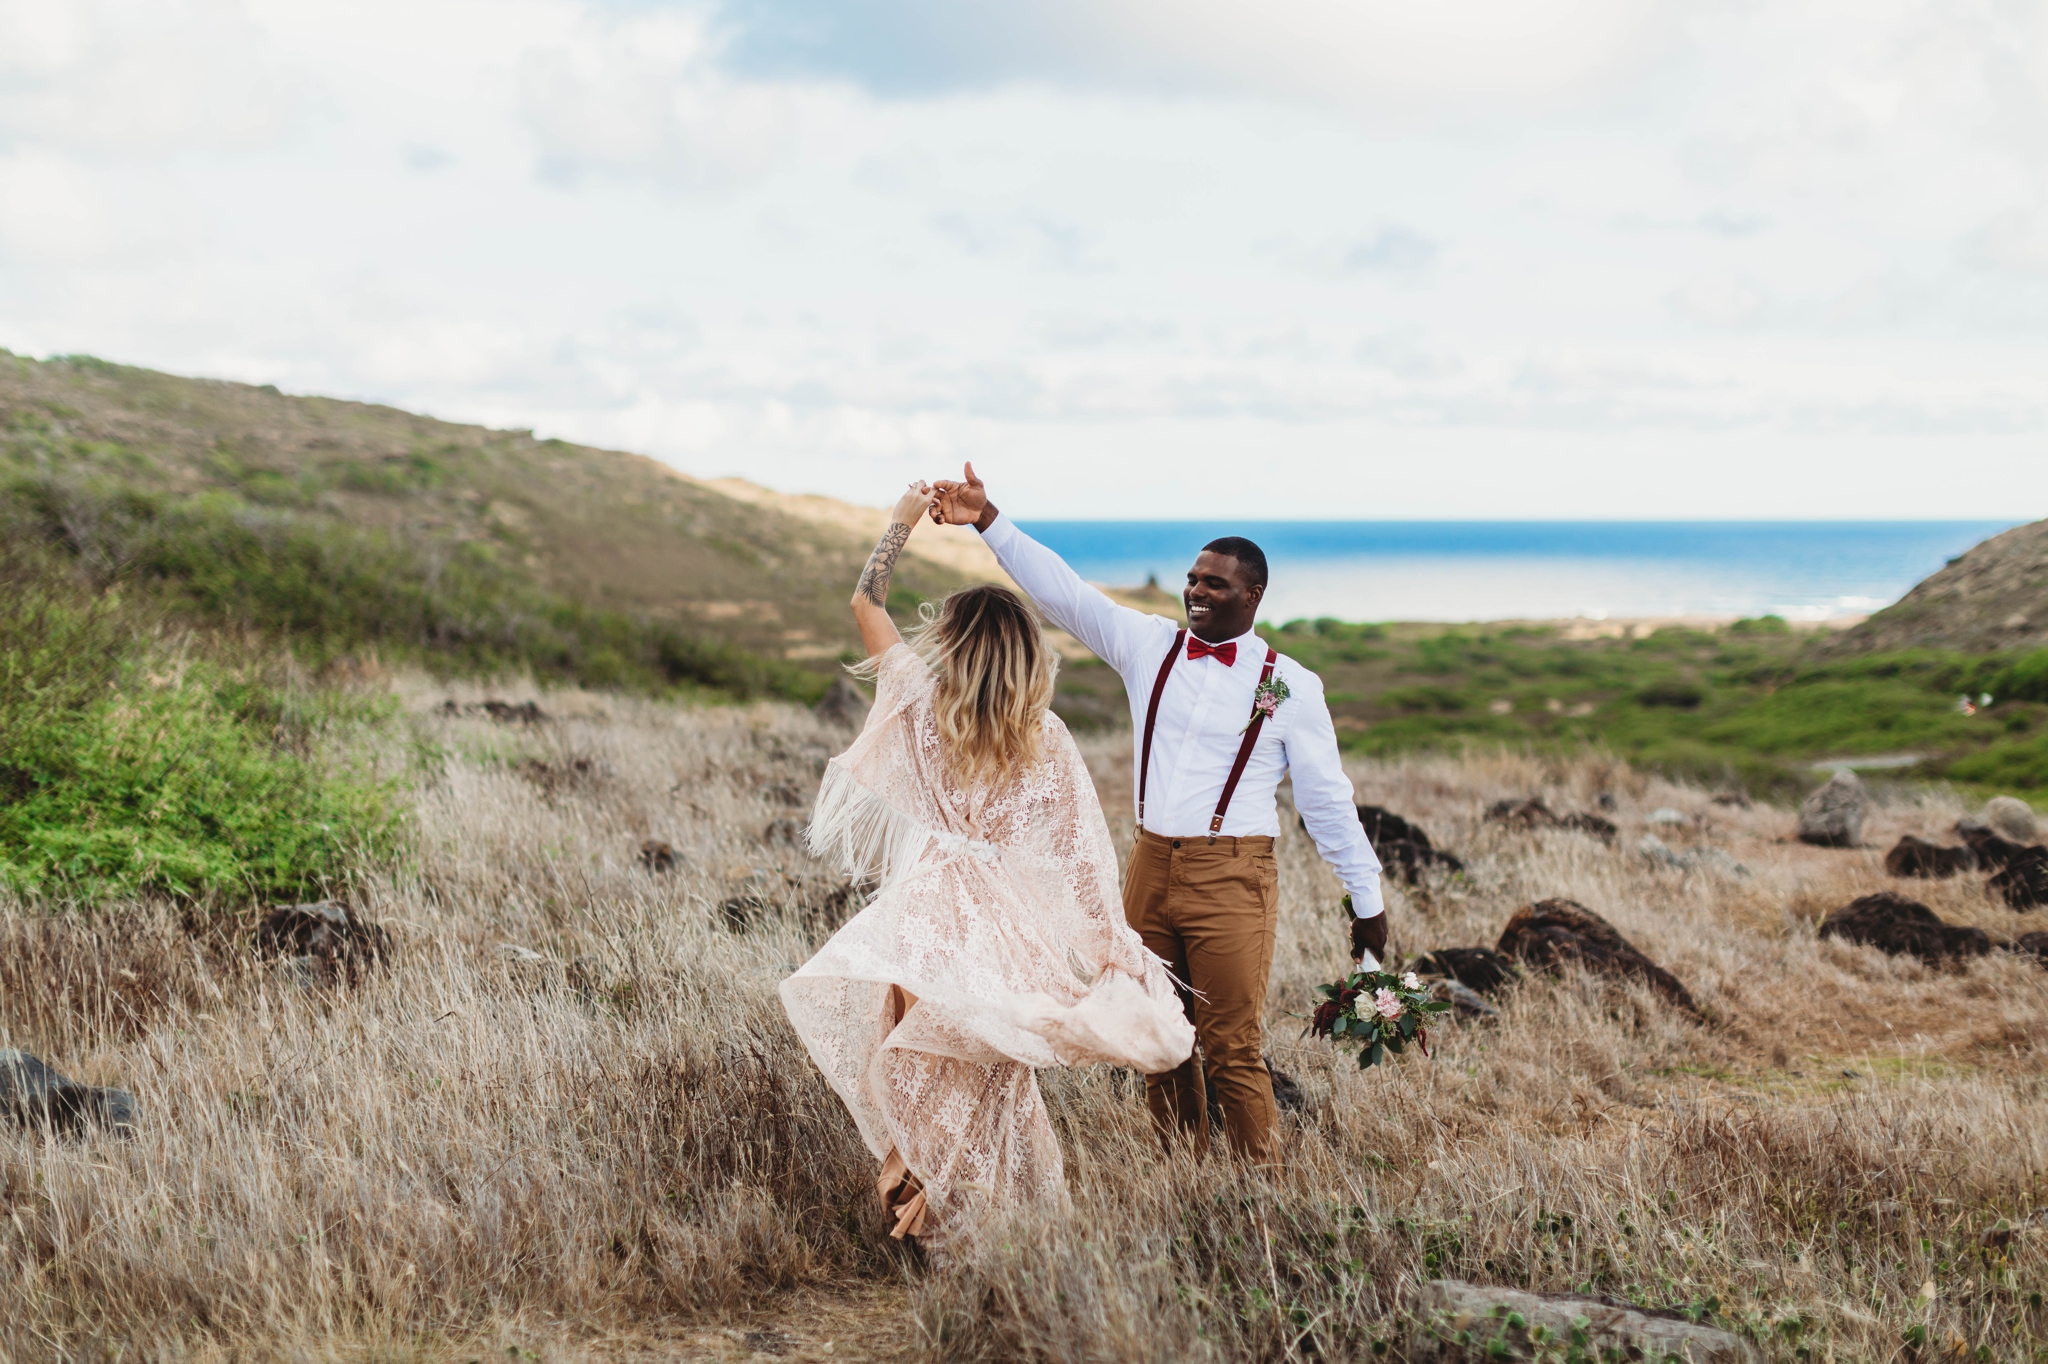 Elopement at Makapuu Lookout, Waimanalo, HI - Oahu Hawaii Engagement Photographer - Bride in a flowy fringe boho wedding dress - in grassy mountains with the ocean in the back - couple is dancing and the dress is blowing in the wind - lanikai lookout - deutsche hochzeits fotografin in hawaii